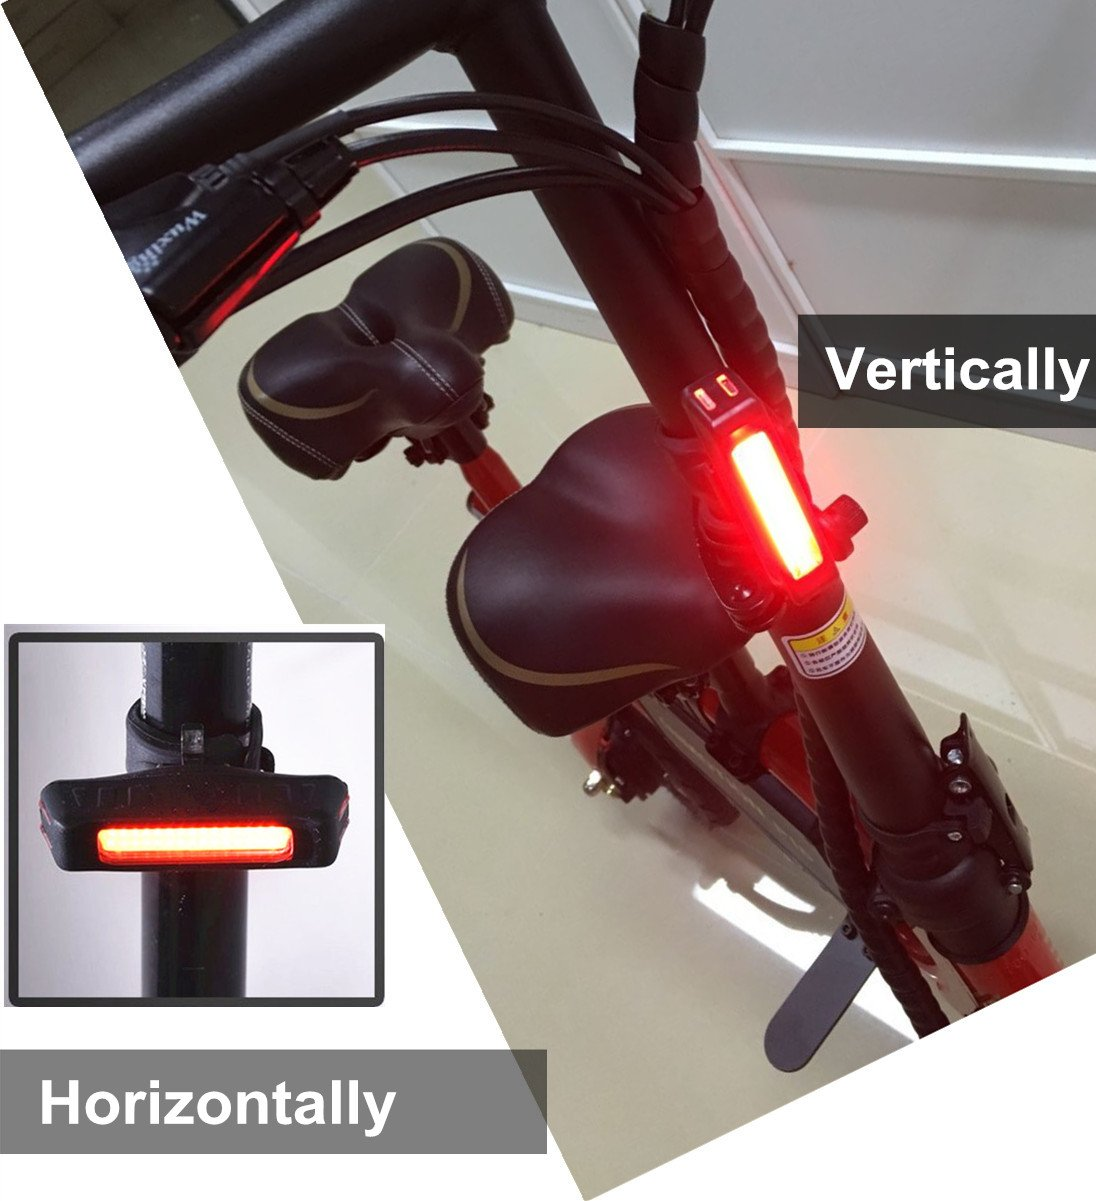 LED Bicycle Rear Light Powerful USB Chargeable 5 Light Mode Headlights with Red /& White for Cycling Safety Flashlight Light Helmets Safety Flashlight Bike Lights Front and Rear Maxfind Ultra Bright Bike Tail Light